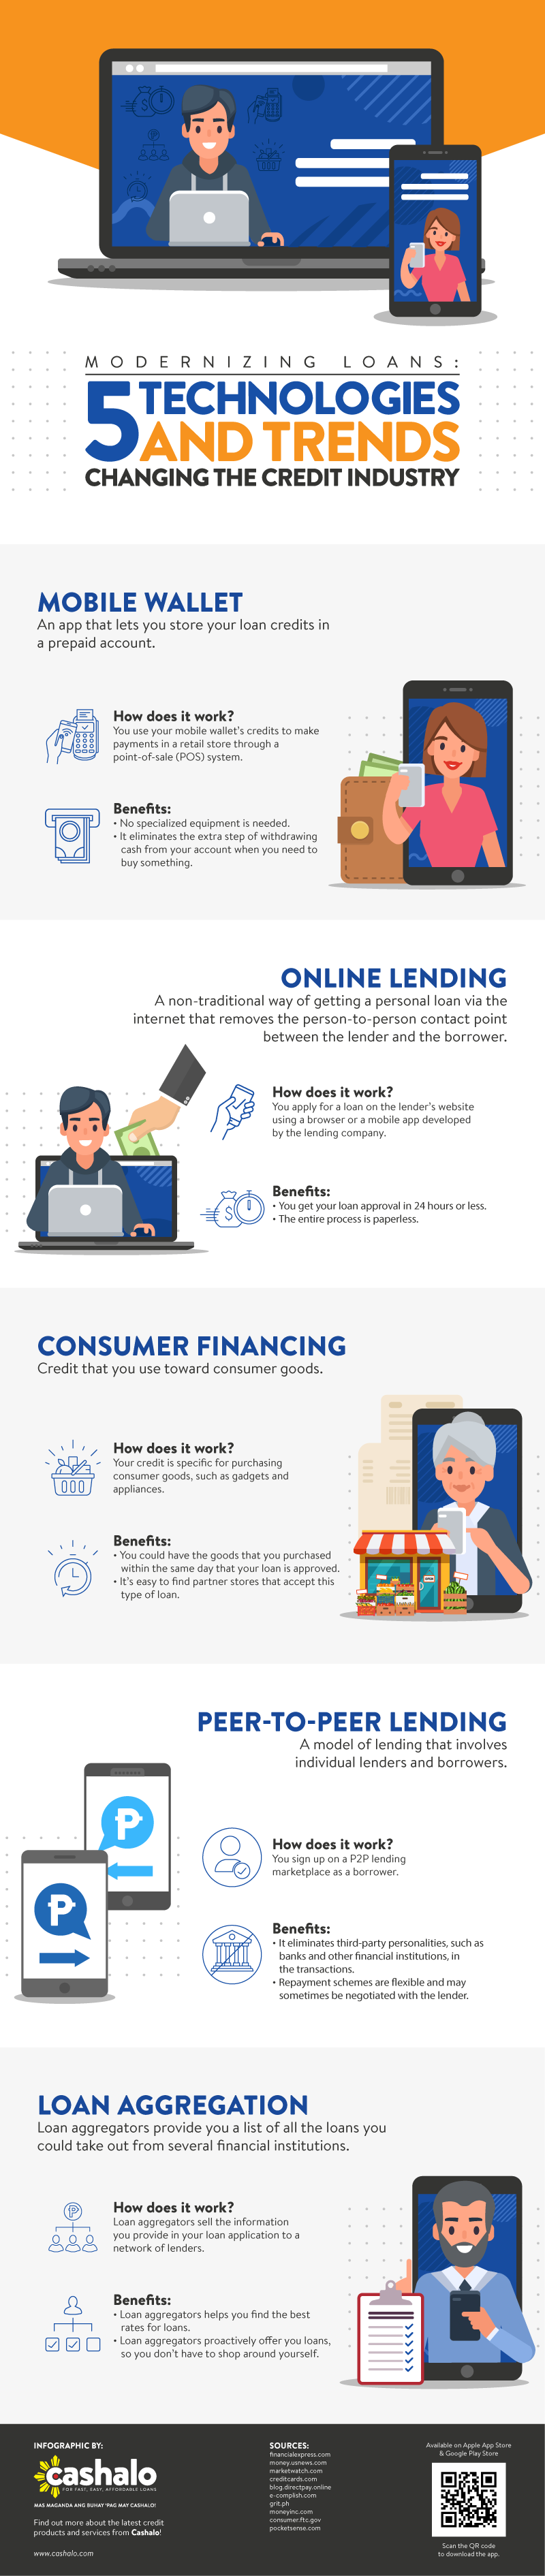 5 Technologies and Trends Changing the Credit Industry [Infographic]